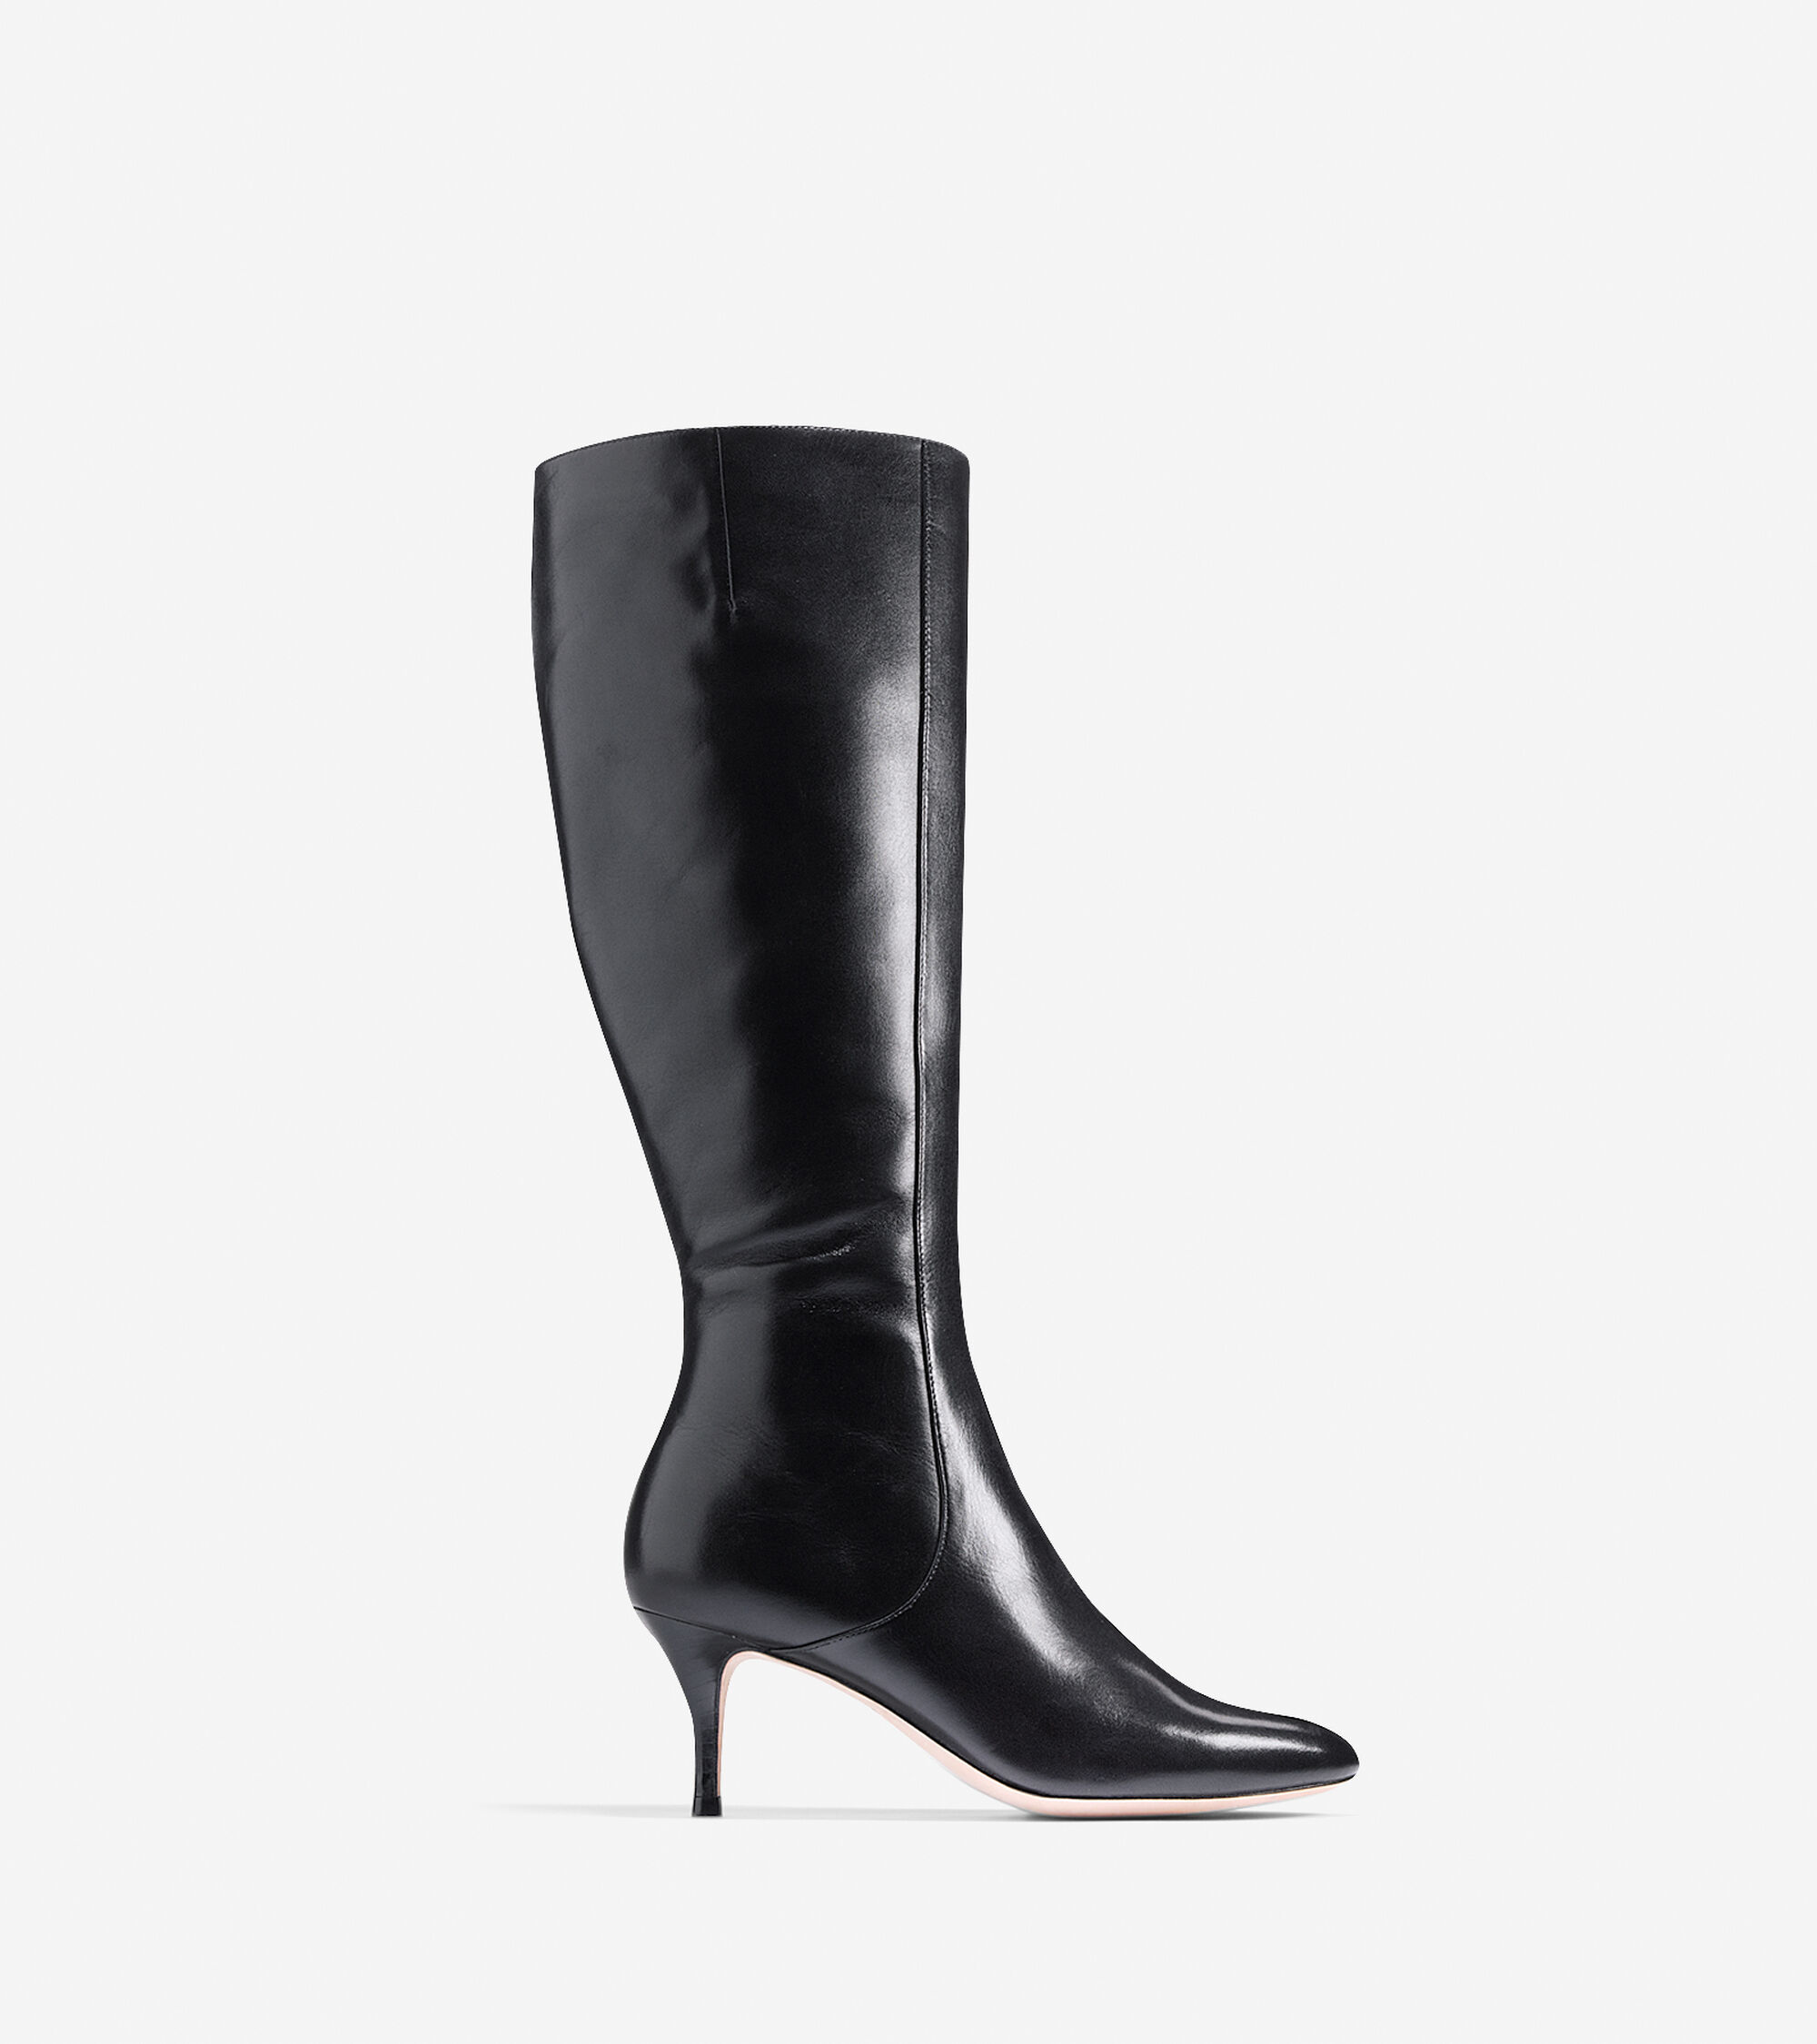 Carlyle Dress Boots in Black : Clearance | Cole Haan